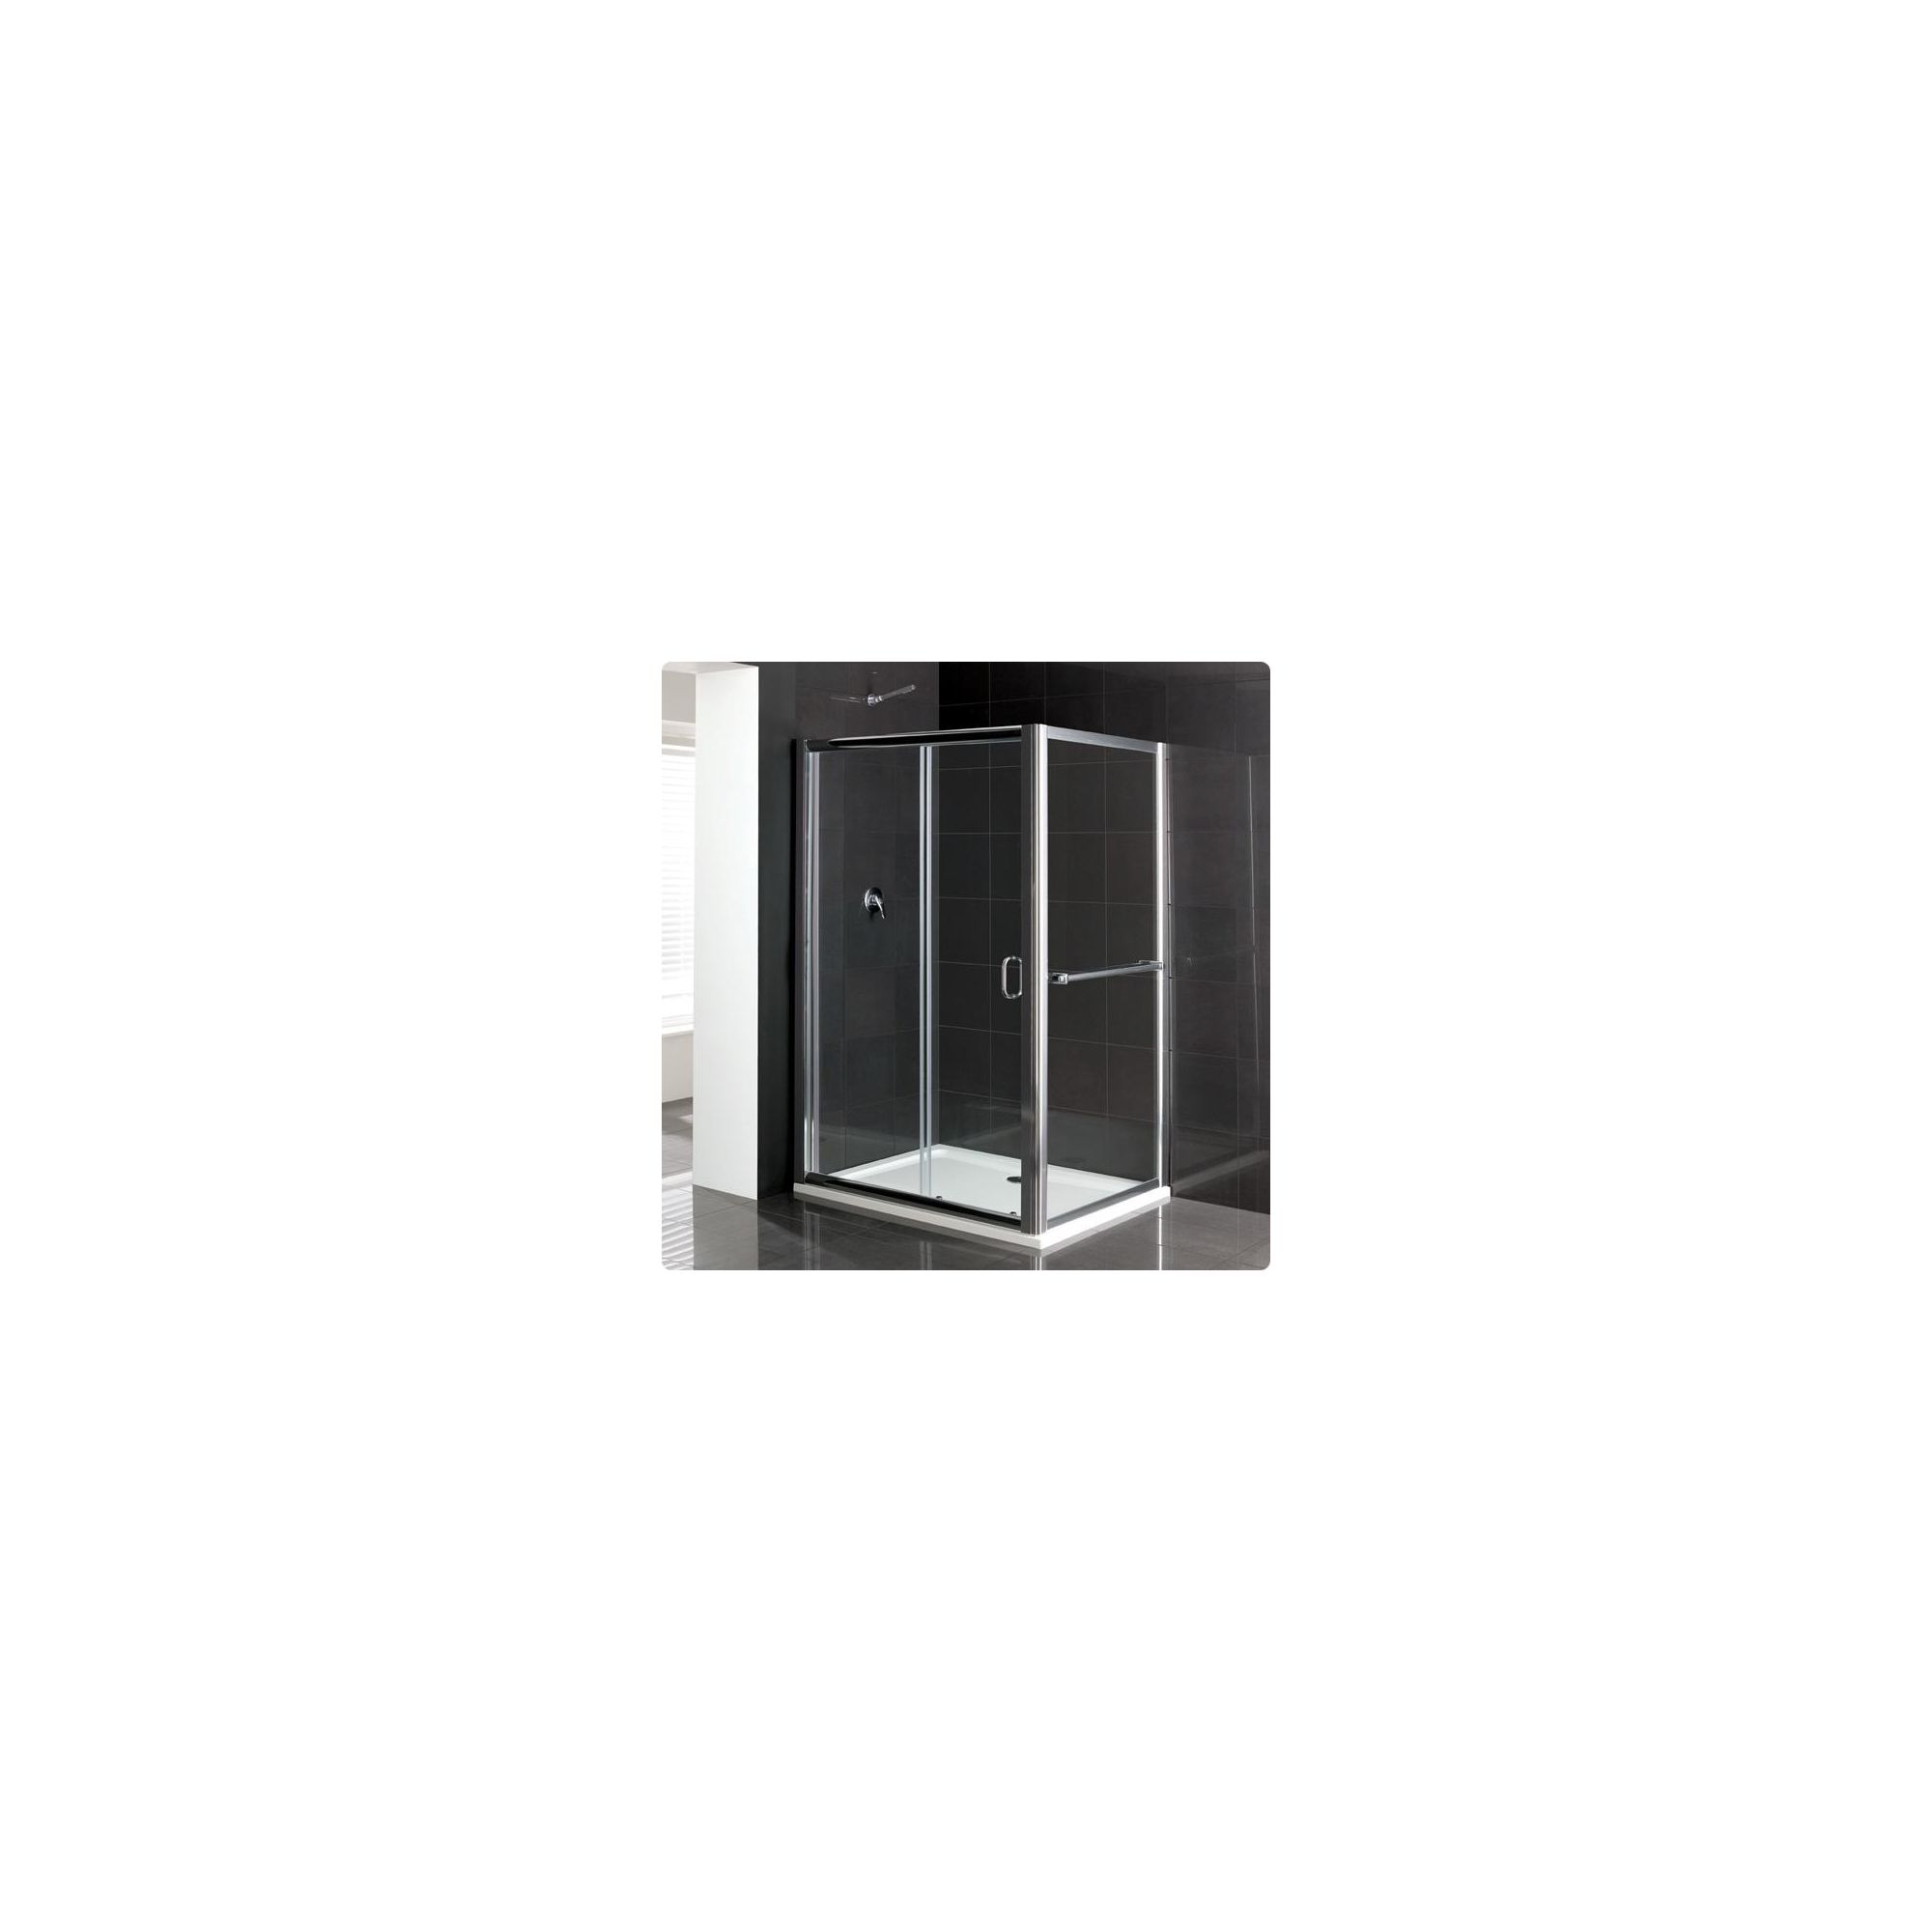 Duchy Elite Silver Sliding Door Shower Enclosure with Towel Rail, 1200mm x 800mm, Standard Tray, 6mm Glass at Tesco Direct